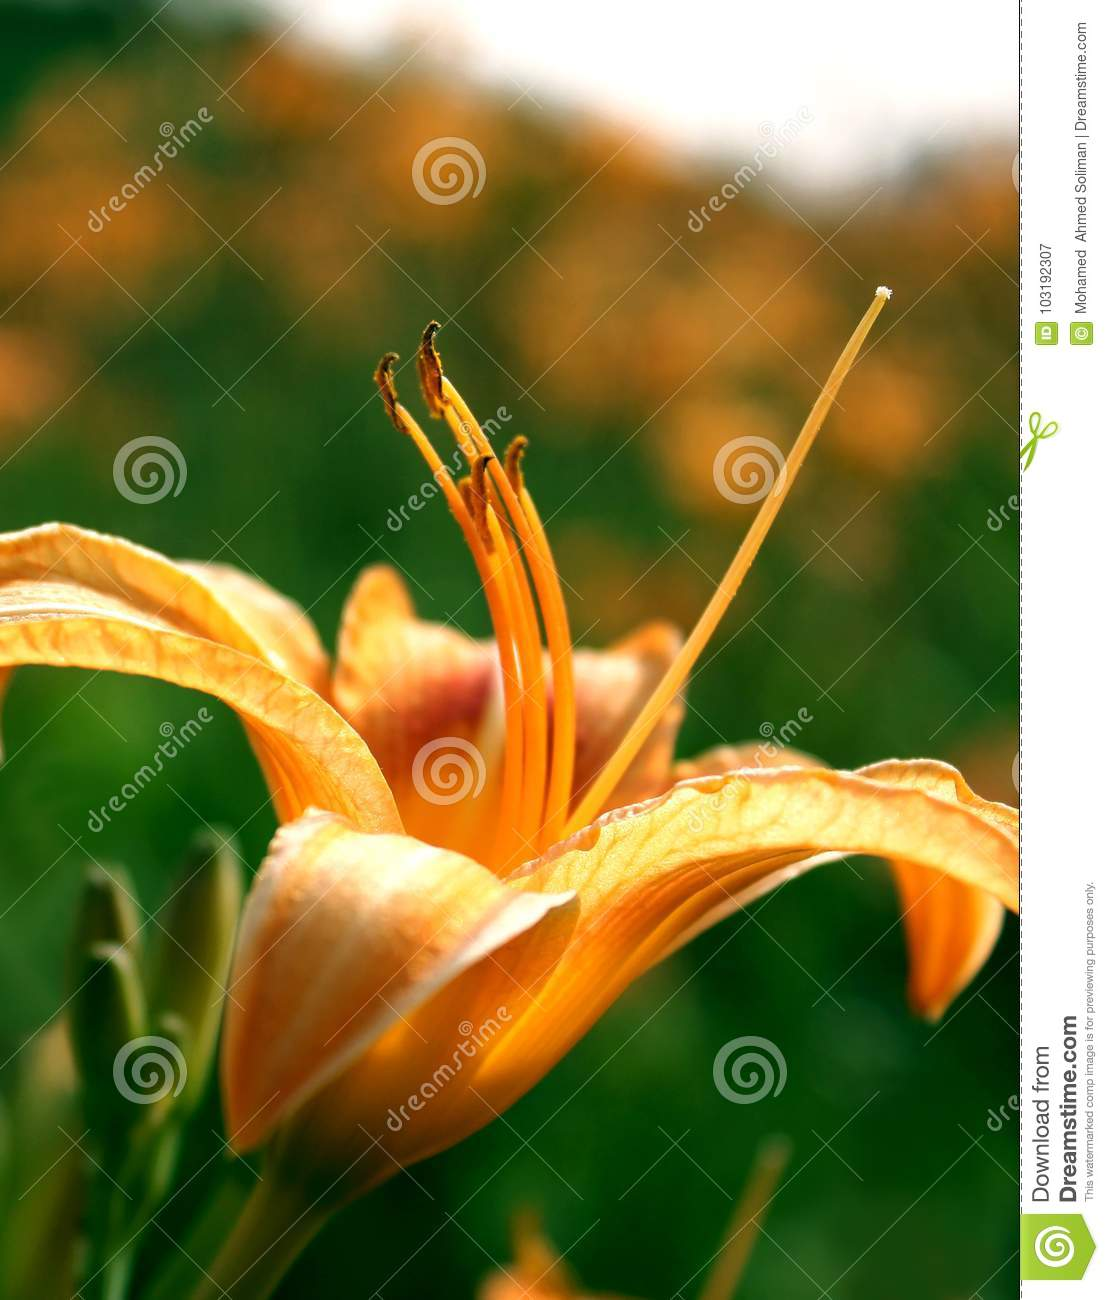 Lily flower wallpaper stock image image of under love 103192307 lily flower wallpaper izmirmasajfo